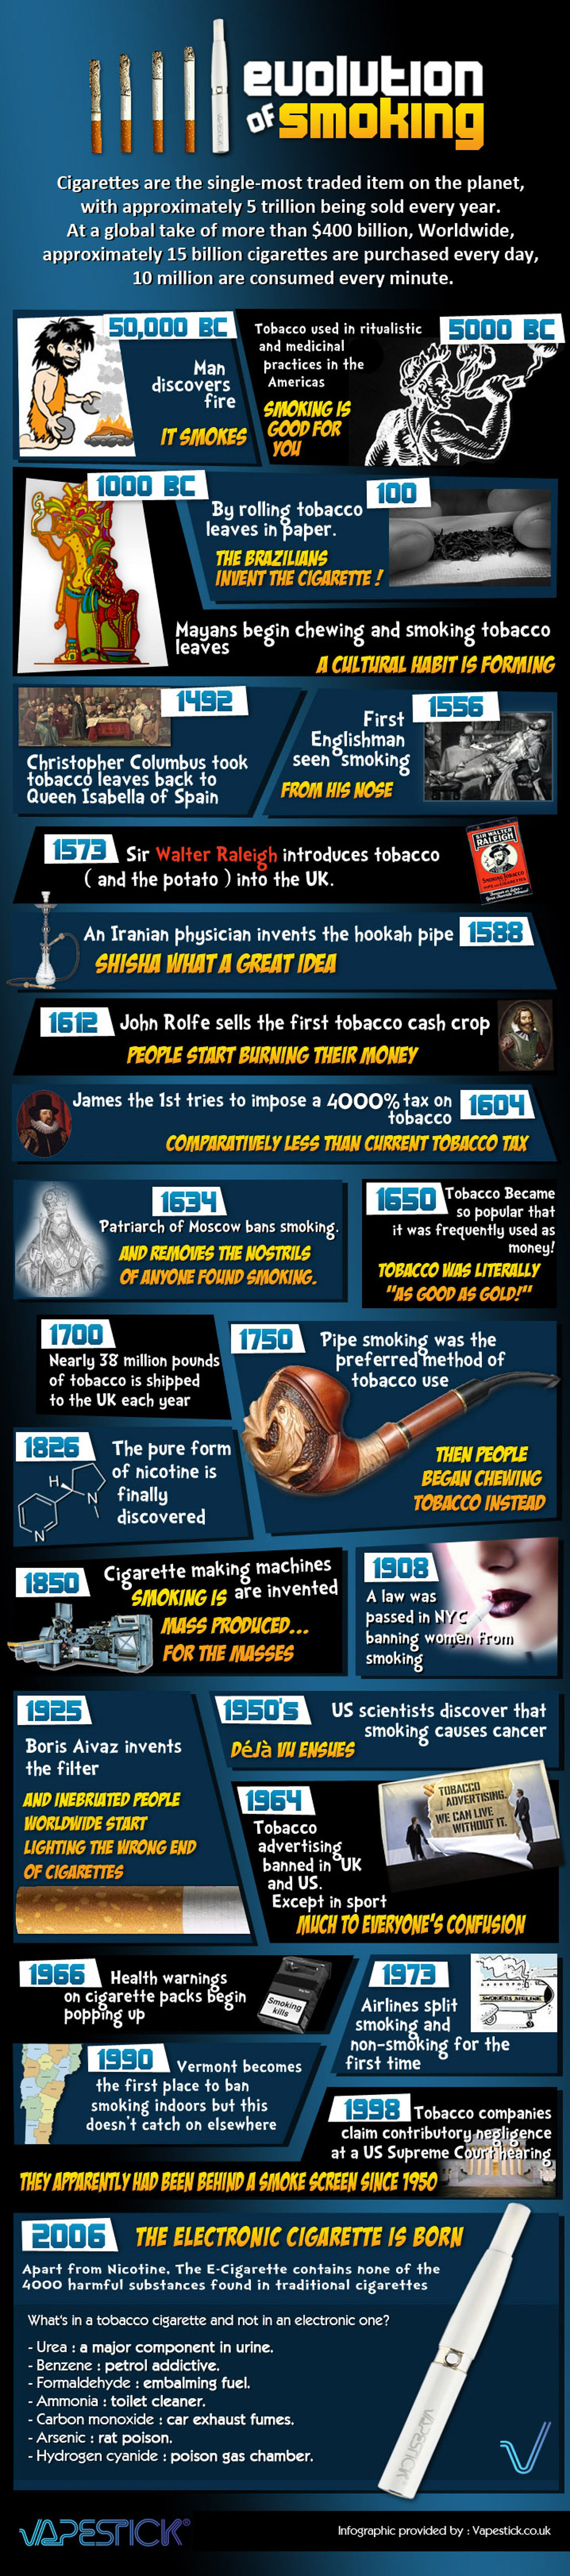 Evolution of Smoking from Cigarettes to the Electronic Cigarette Infographic